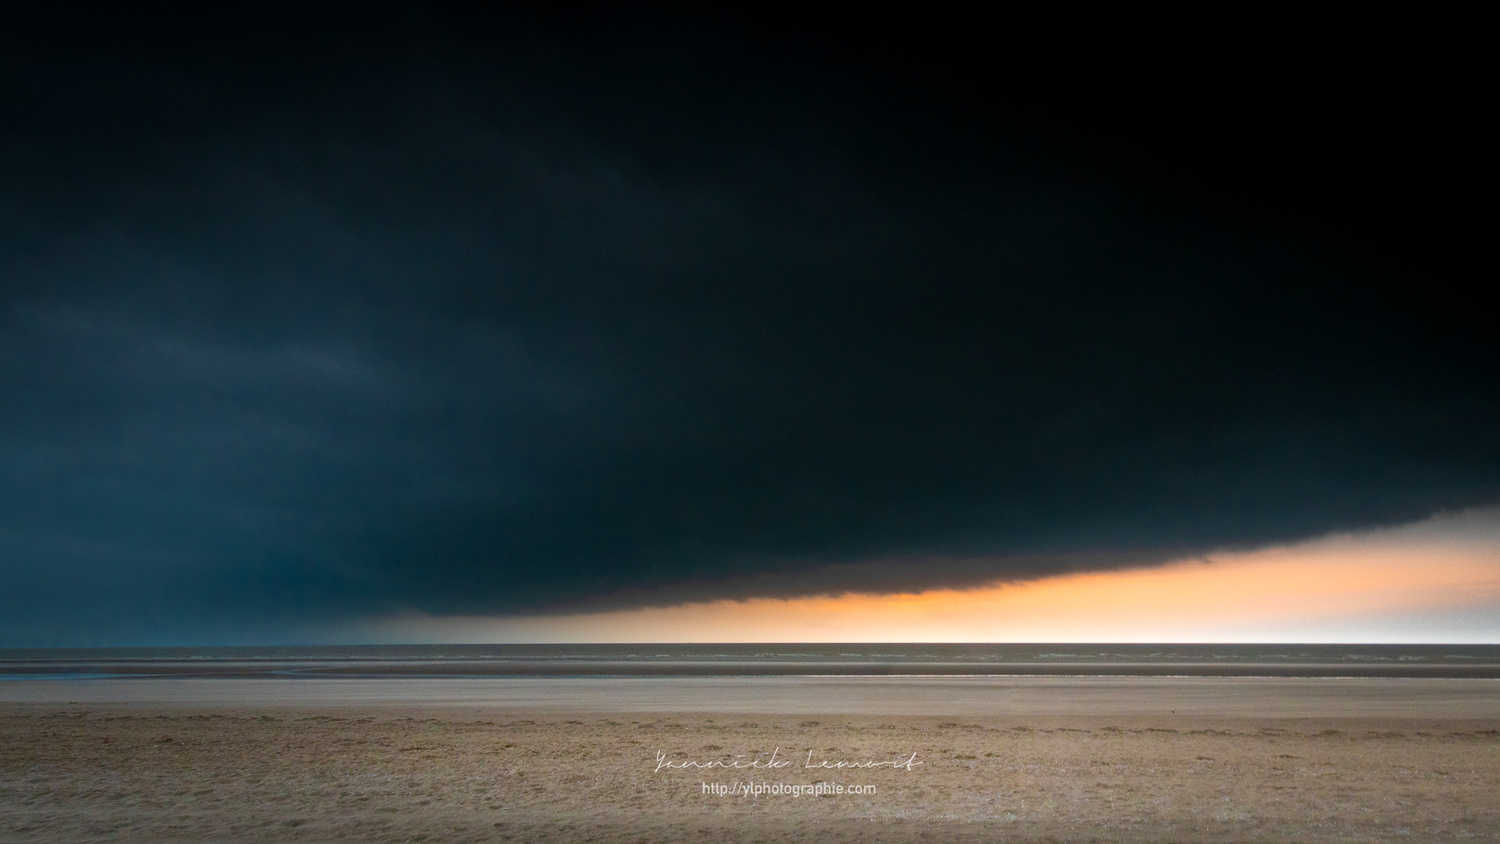 The storm by YL Photographie